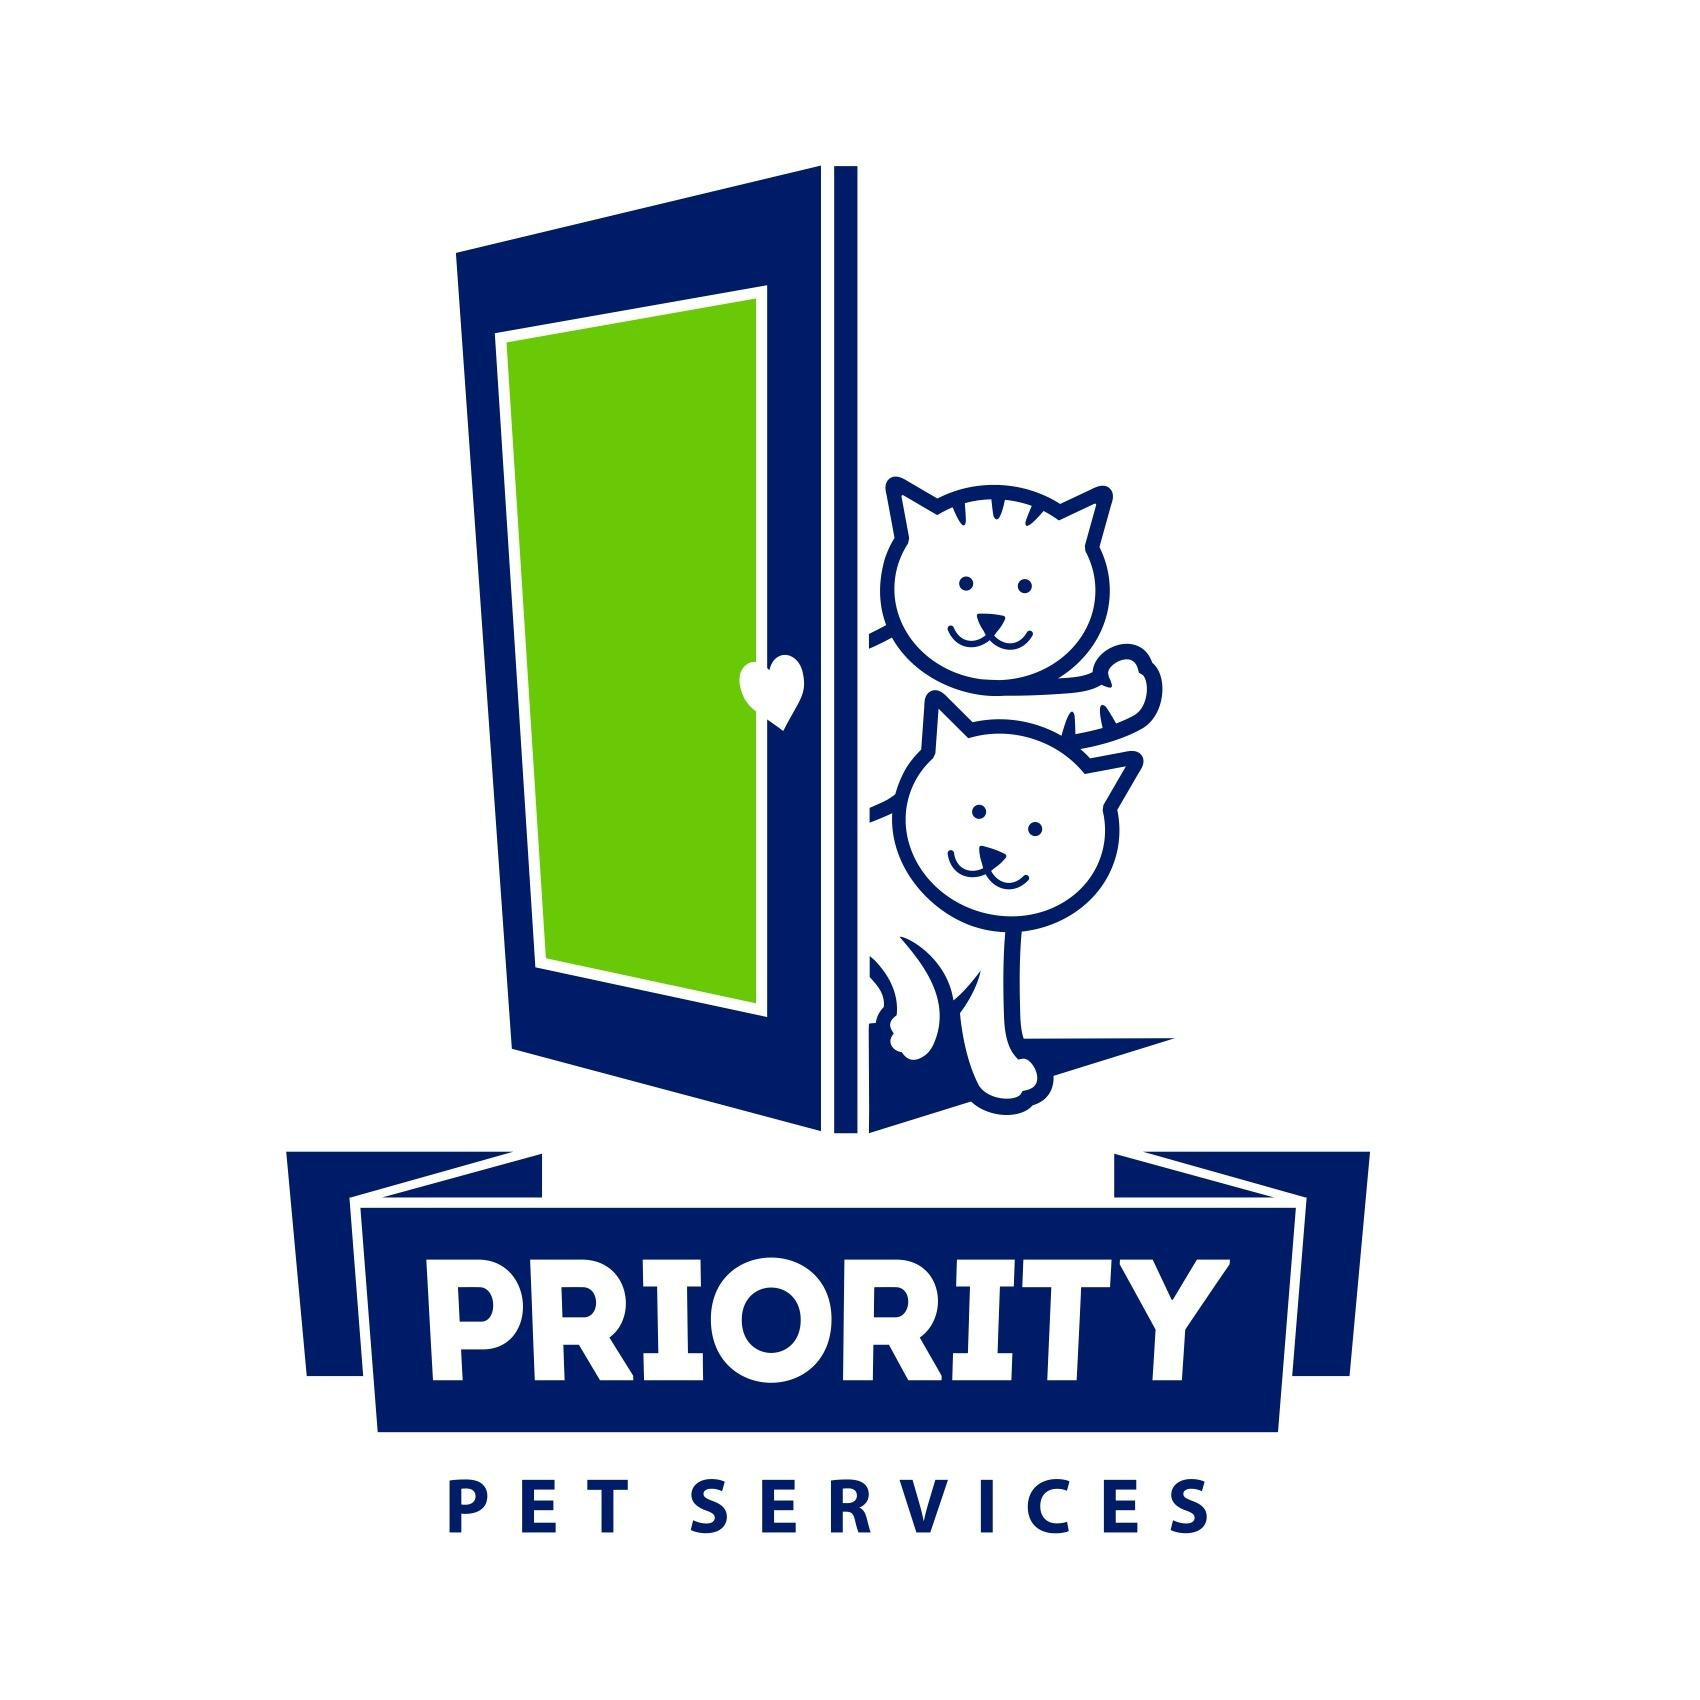 Priority Pet Services